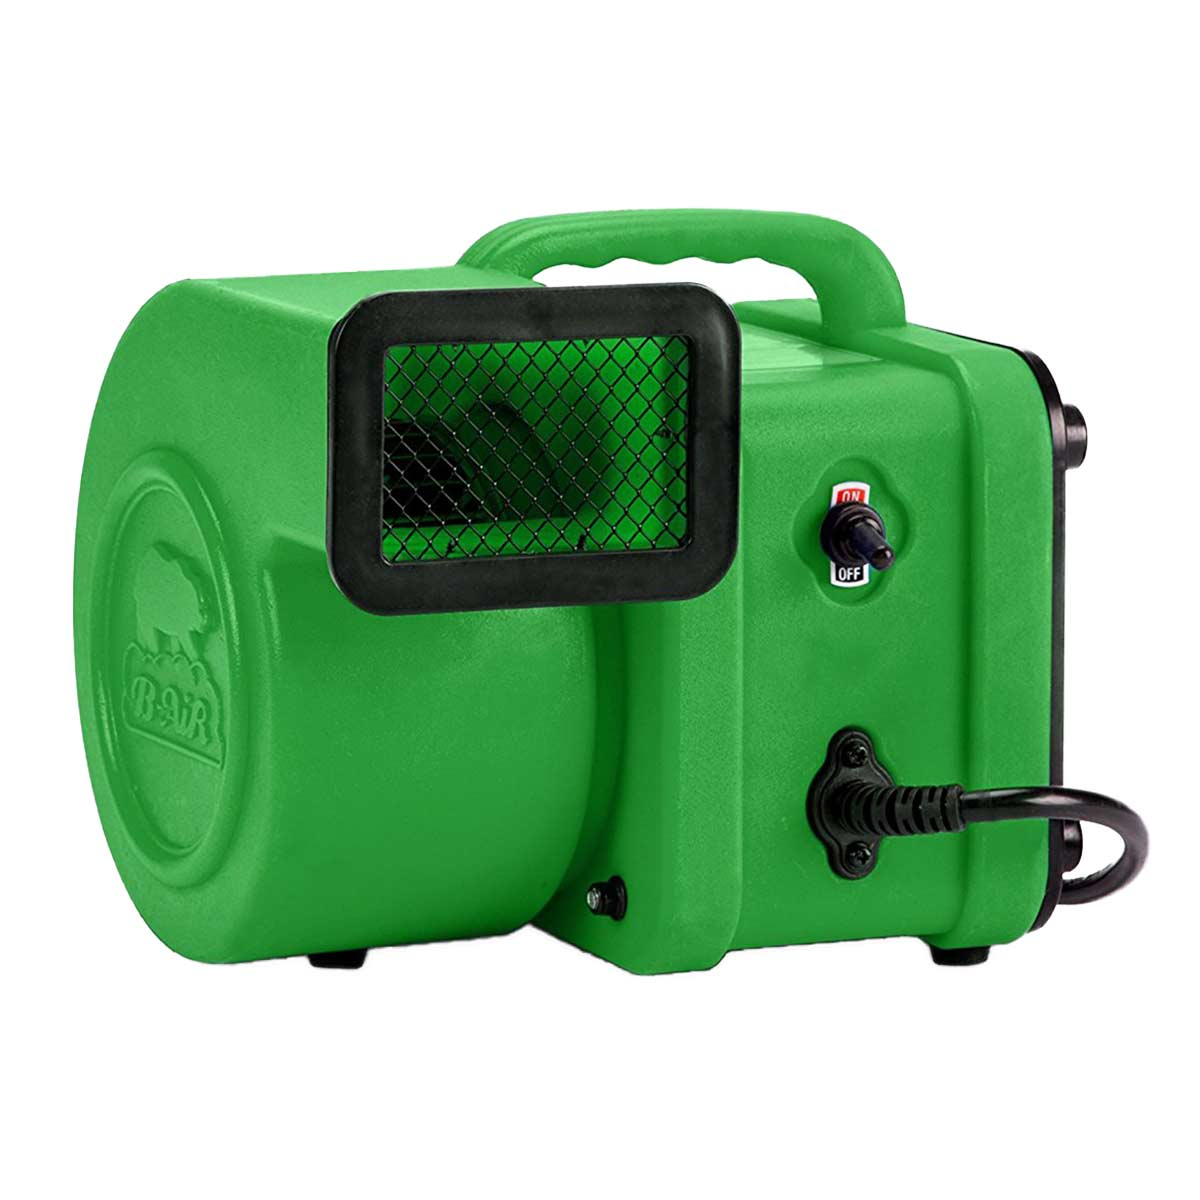 B-Air Cub Dryer Green for Professional Grooming Kennels